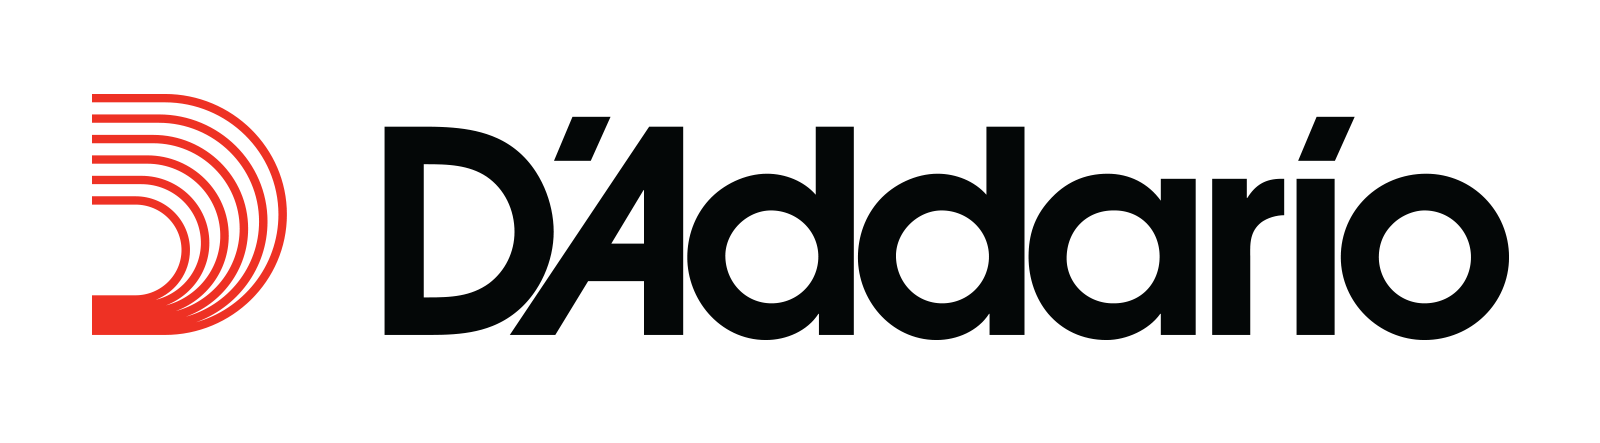 logo_daddario_4color_transparent.png